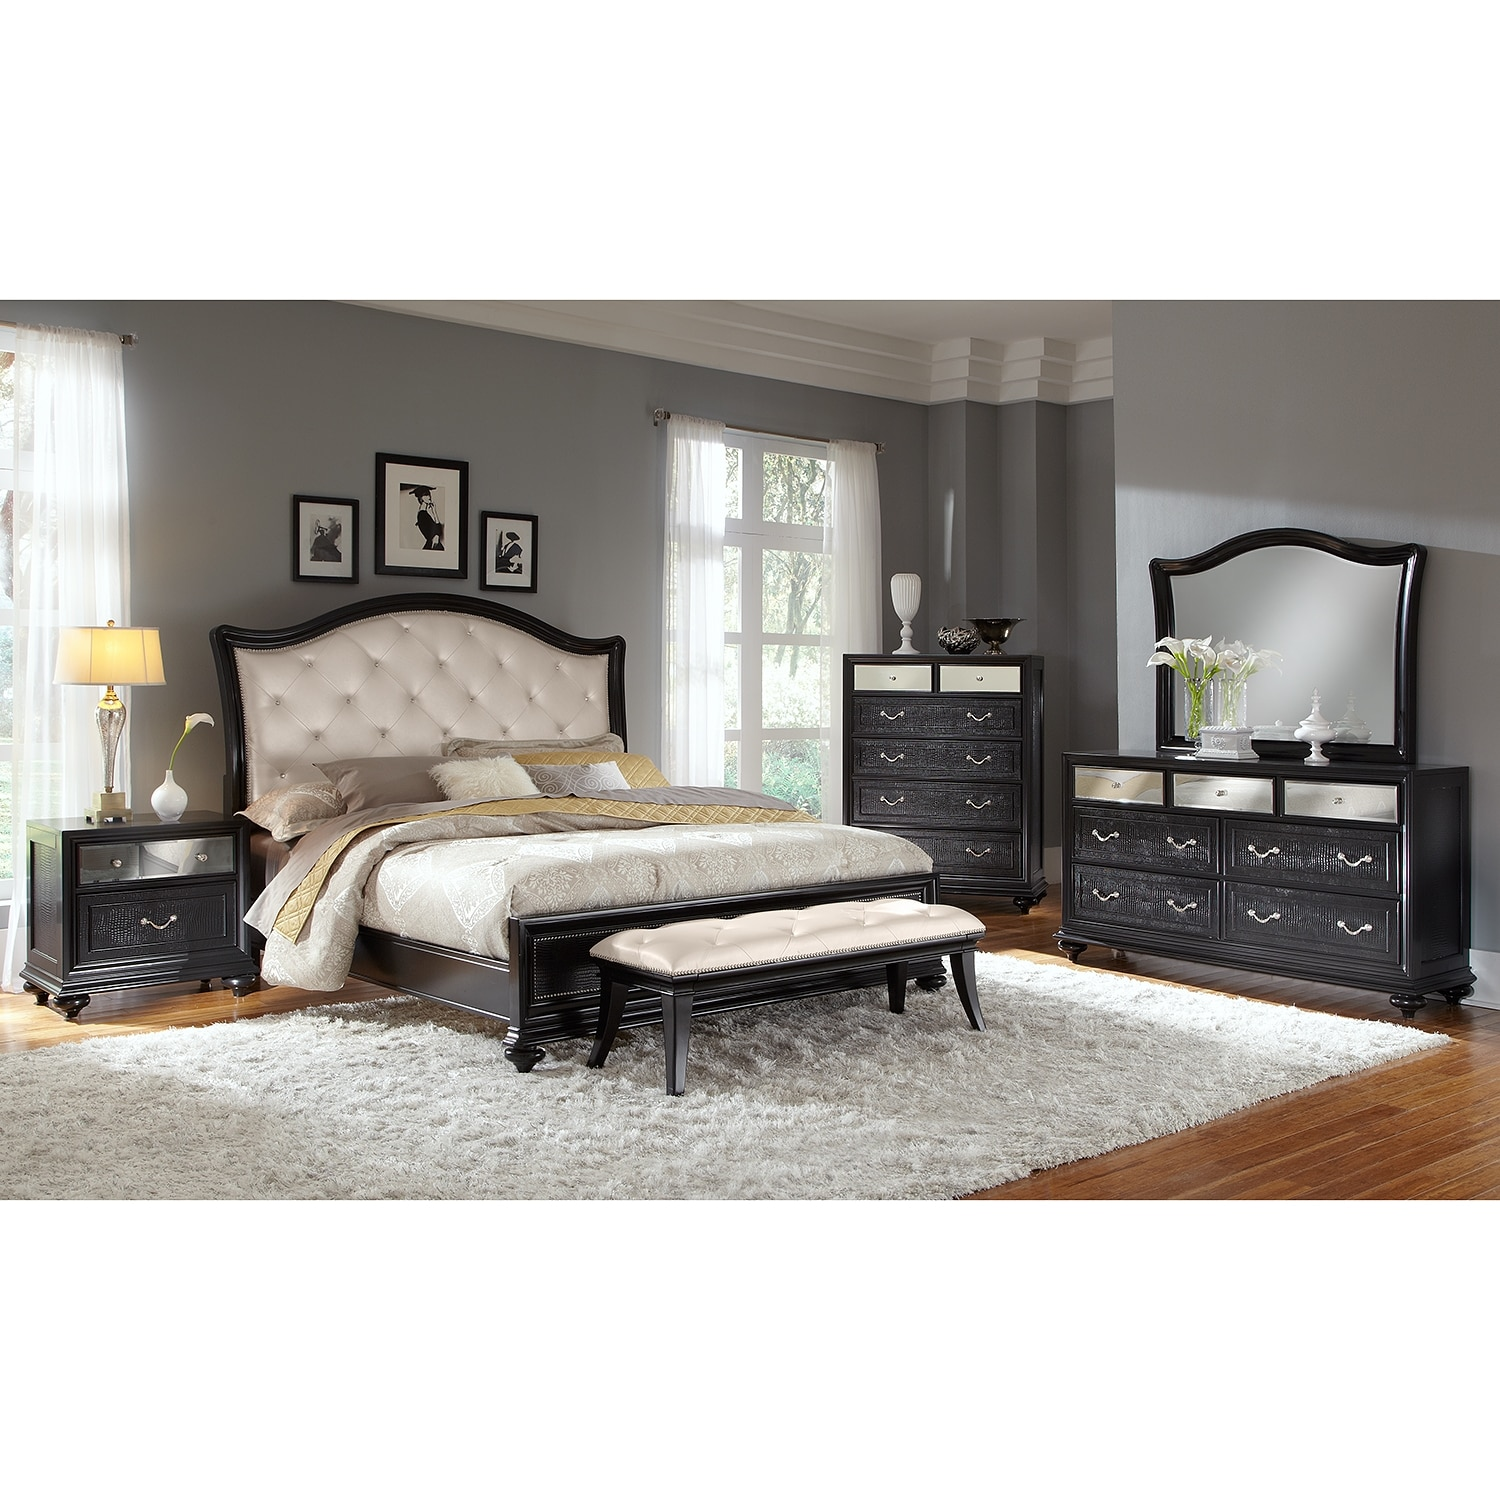 pulaski bedroom sets. Click to change image  Marilyn King Bed Ebony Value City Furniture and Mattresses